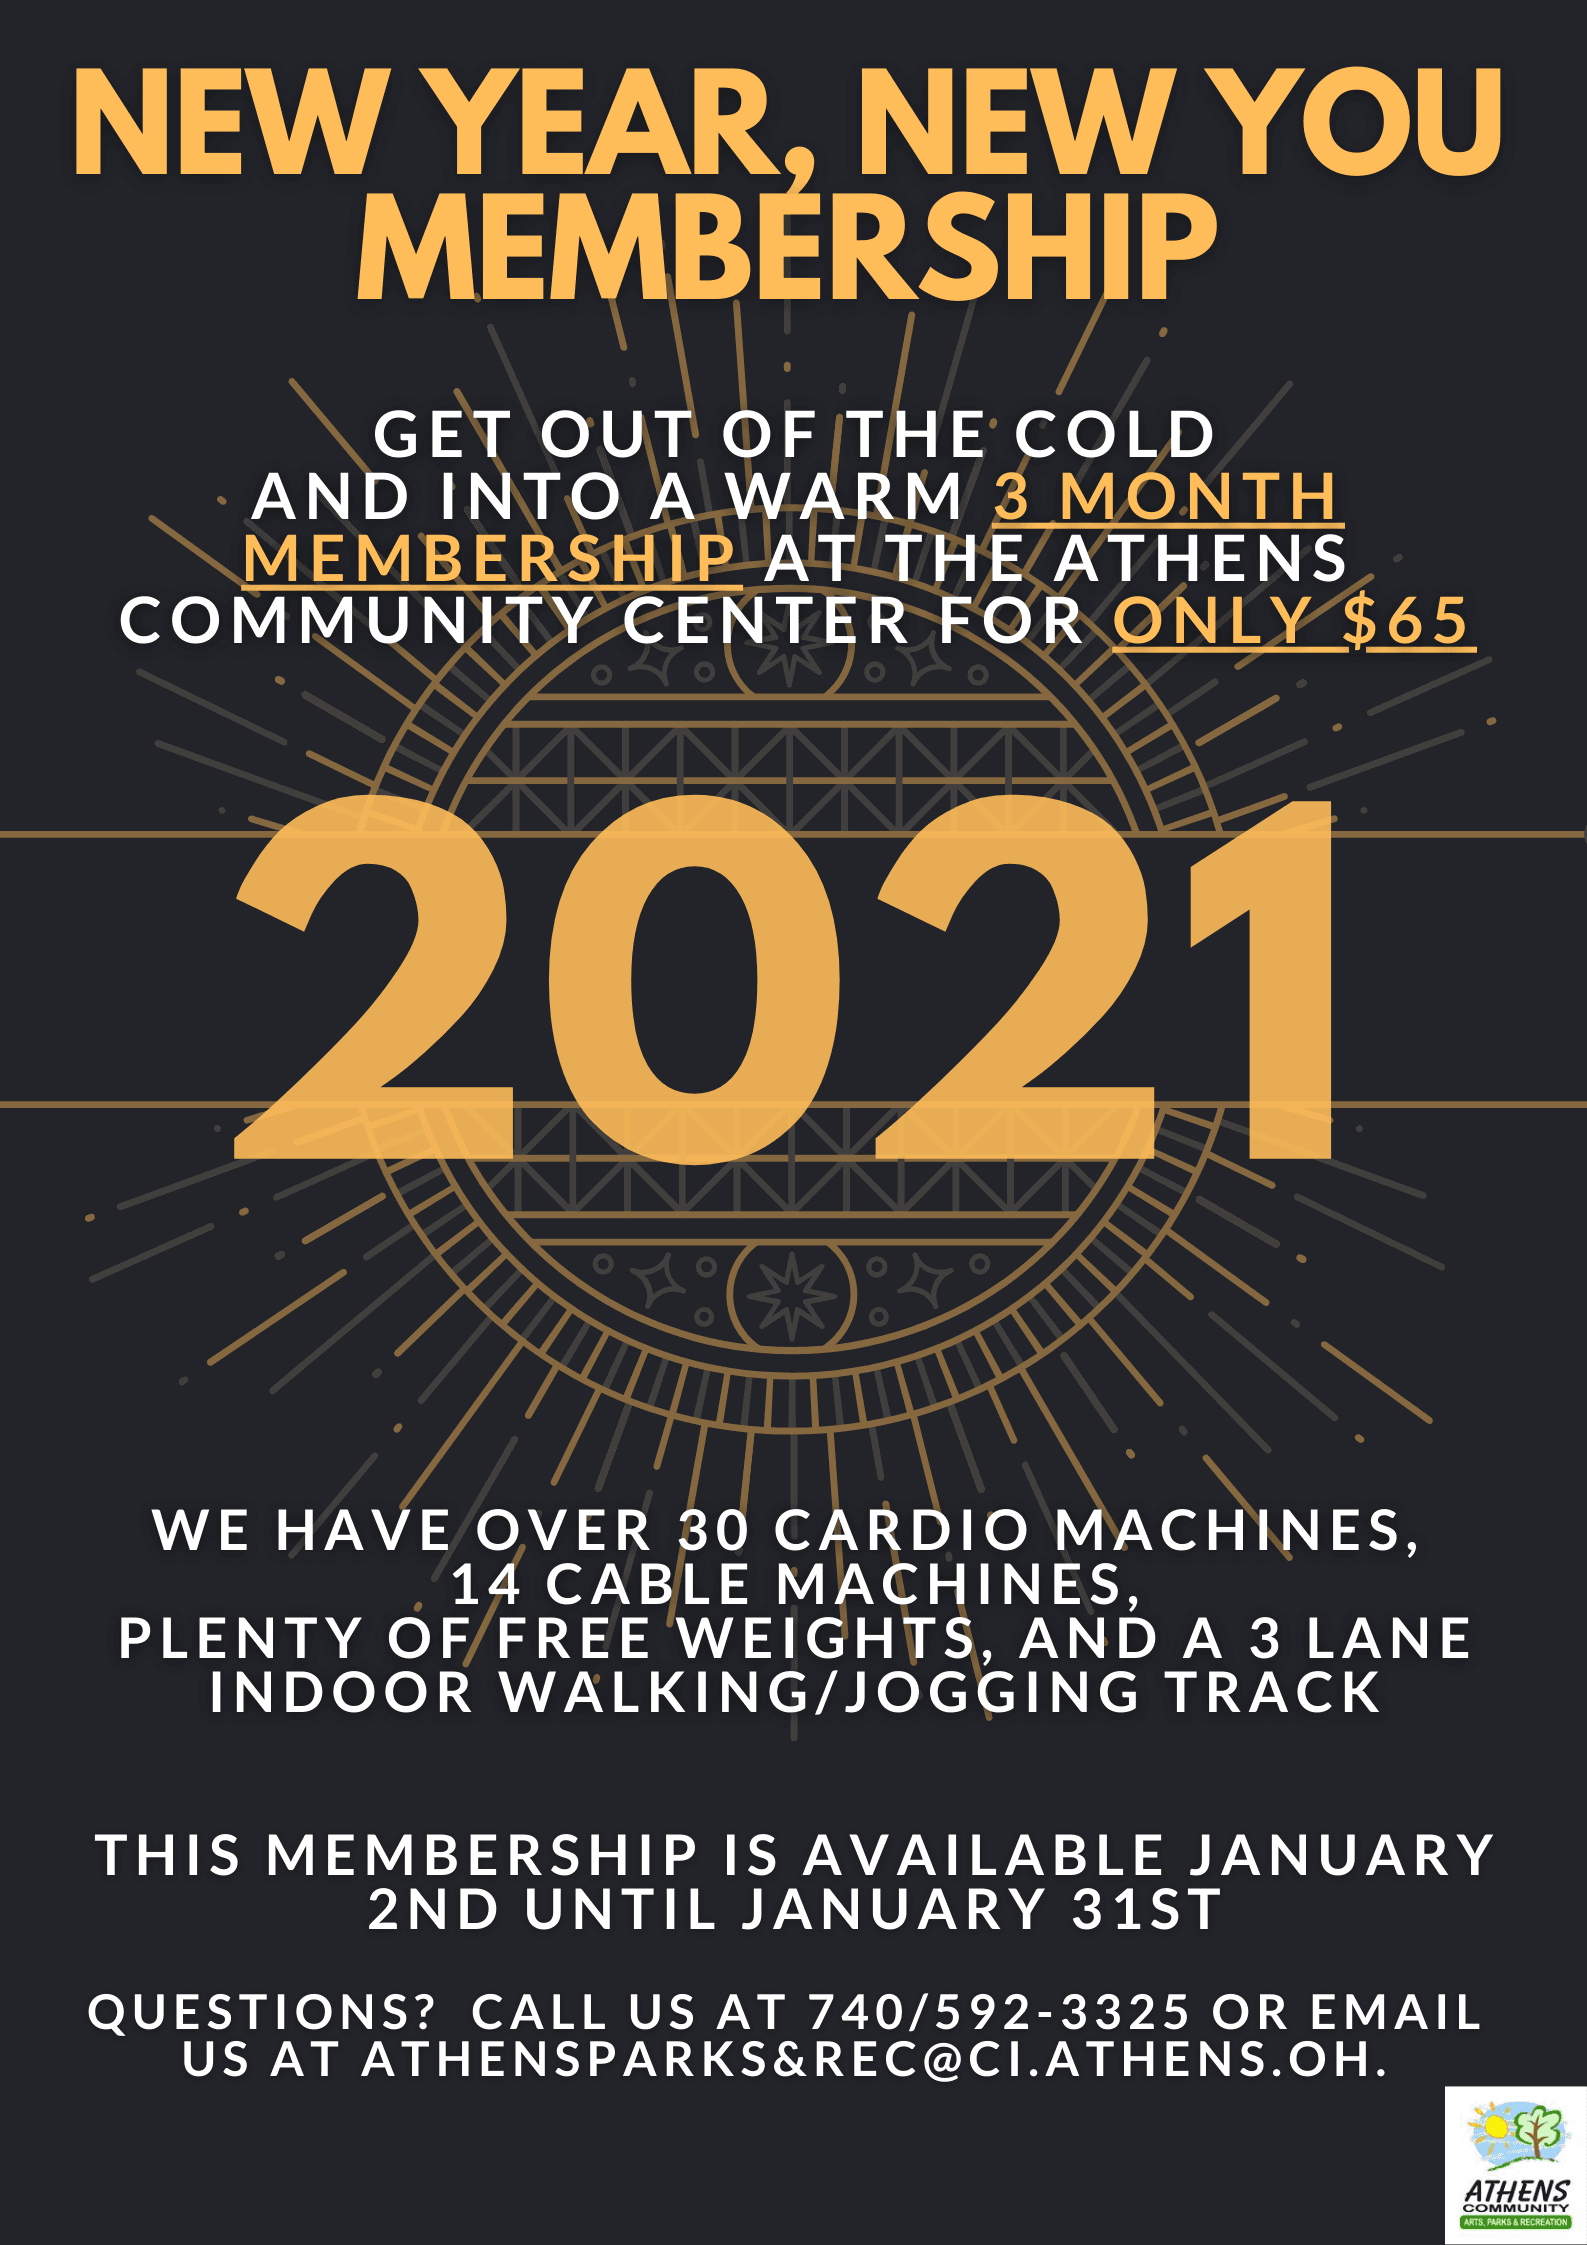 New Year New You Membership Promo_2021